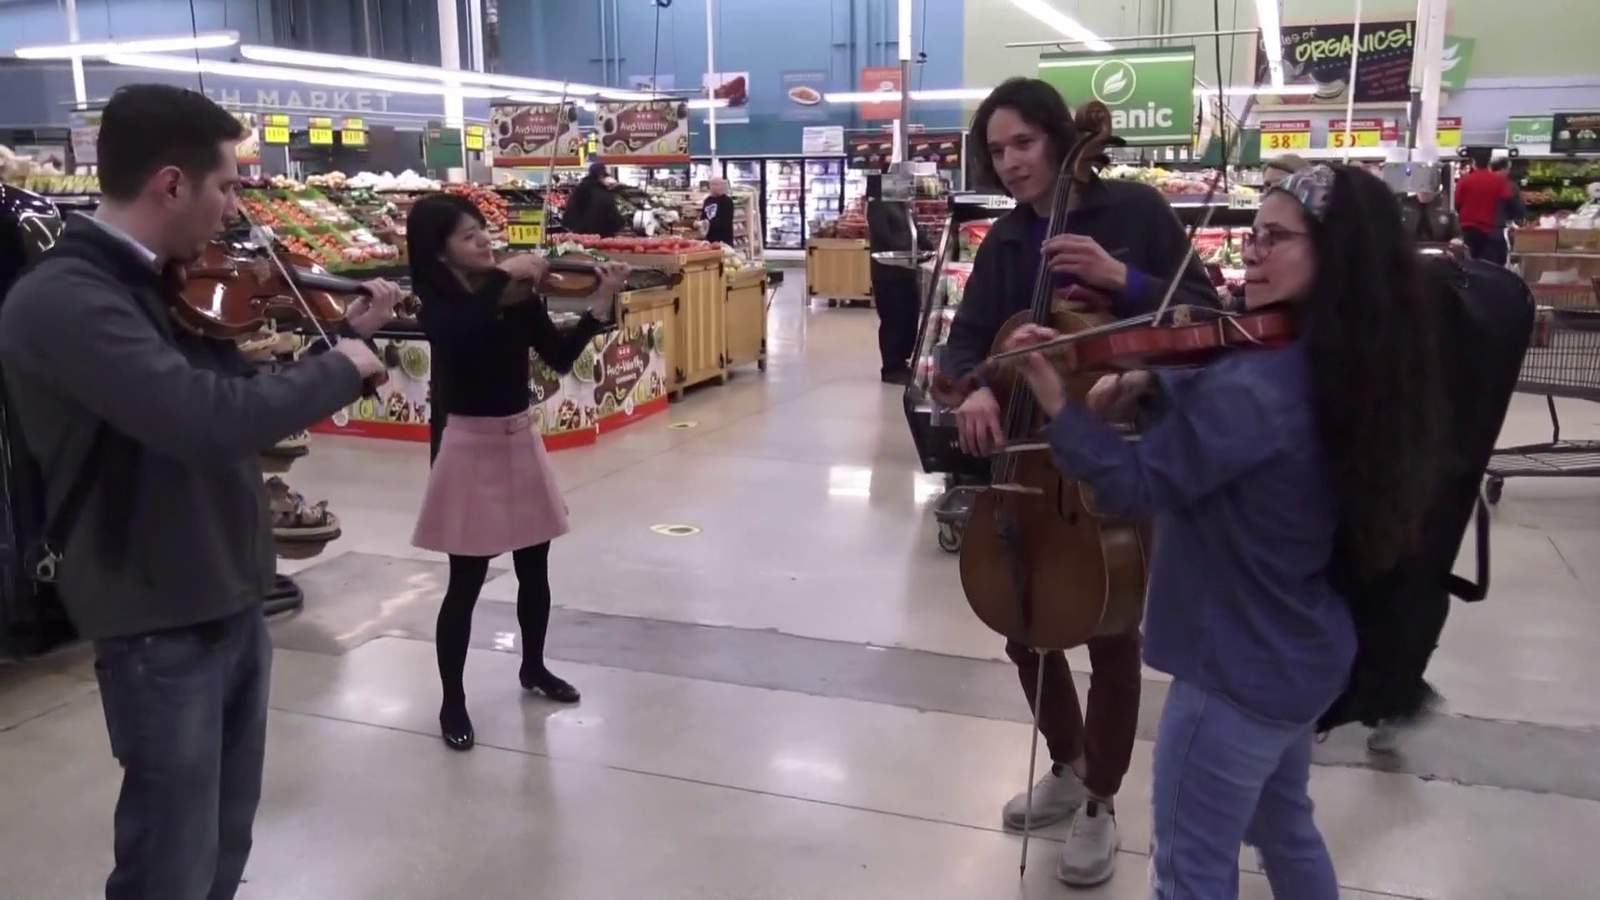 Classical Music Institute flash mob surprises North Side H-E-B shoppers